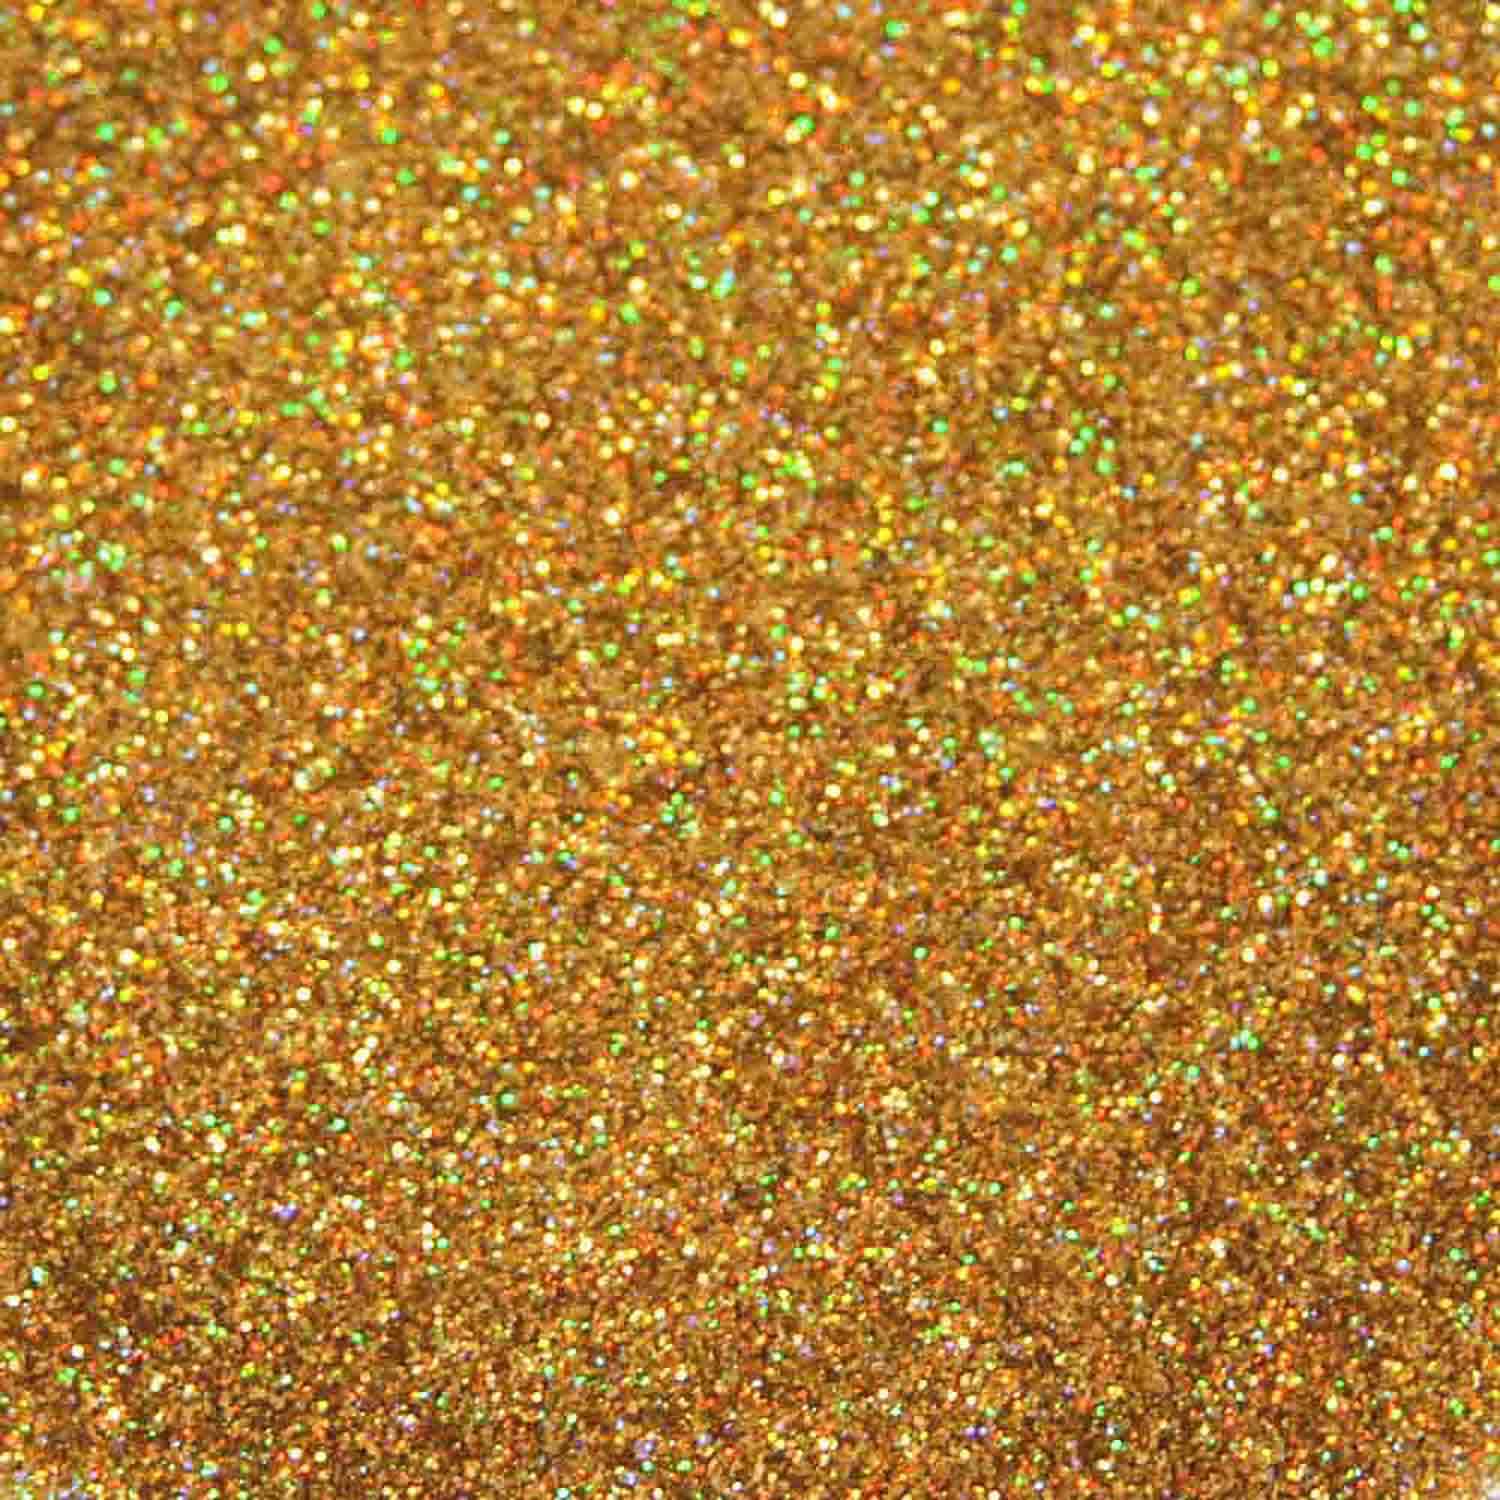 Hologram Gold Techno Glitter Dust